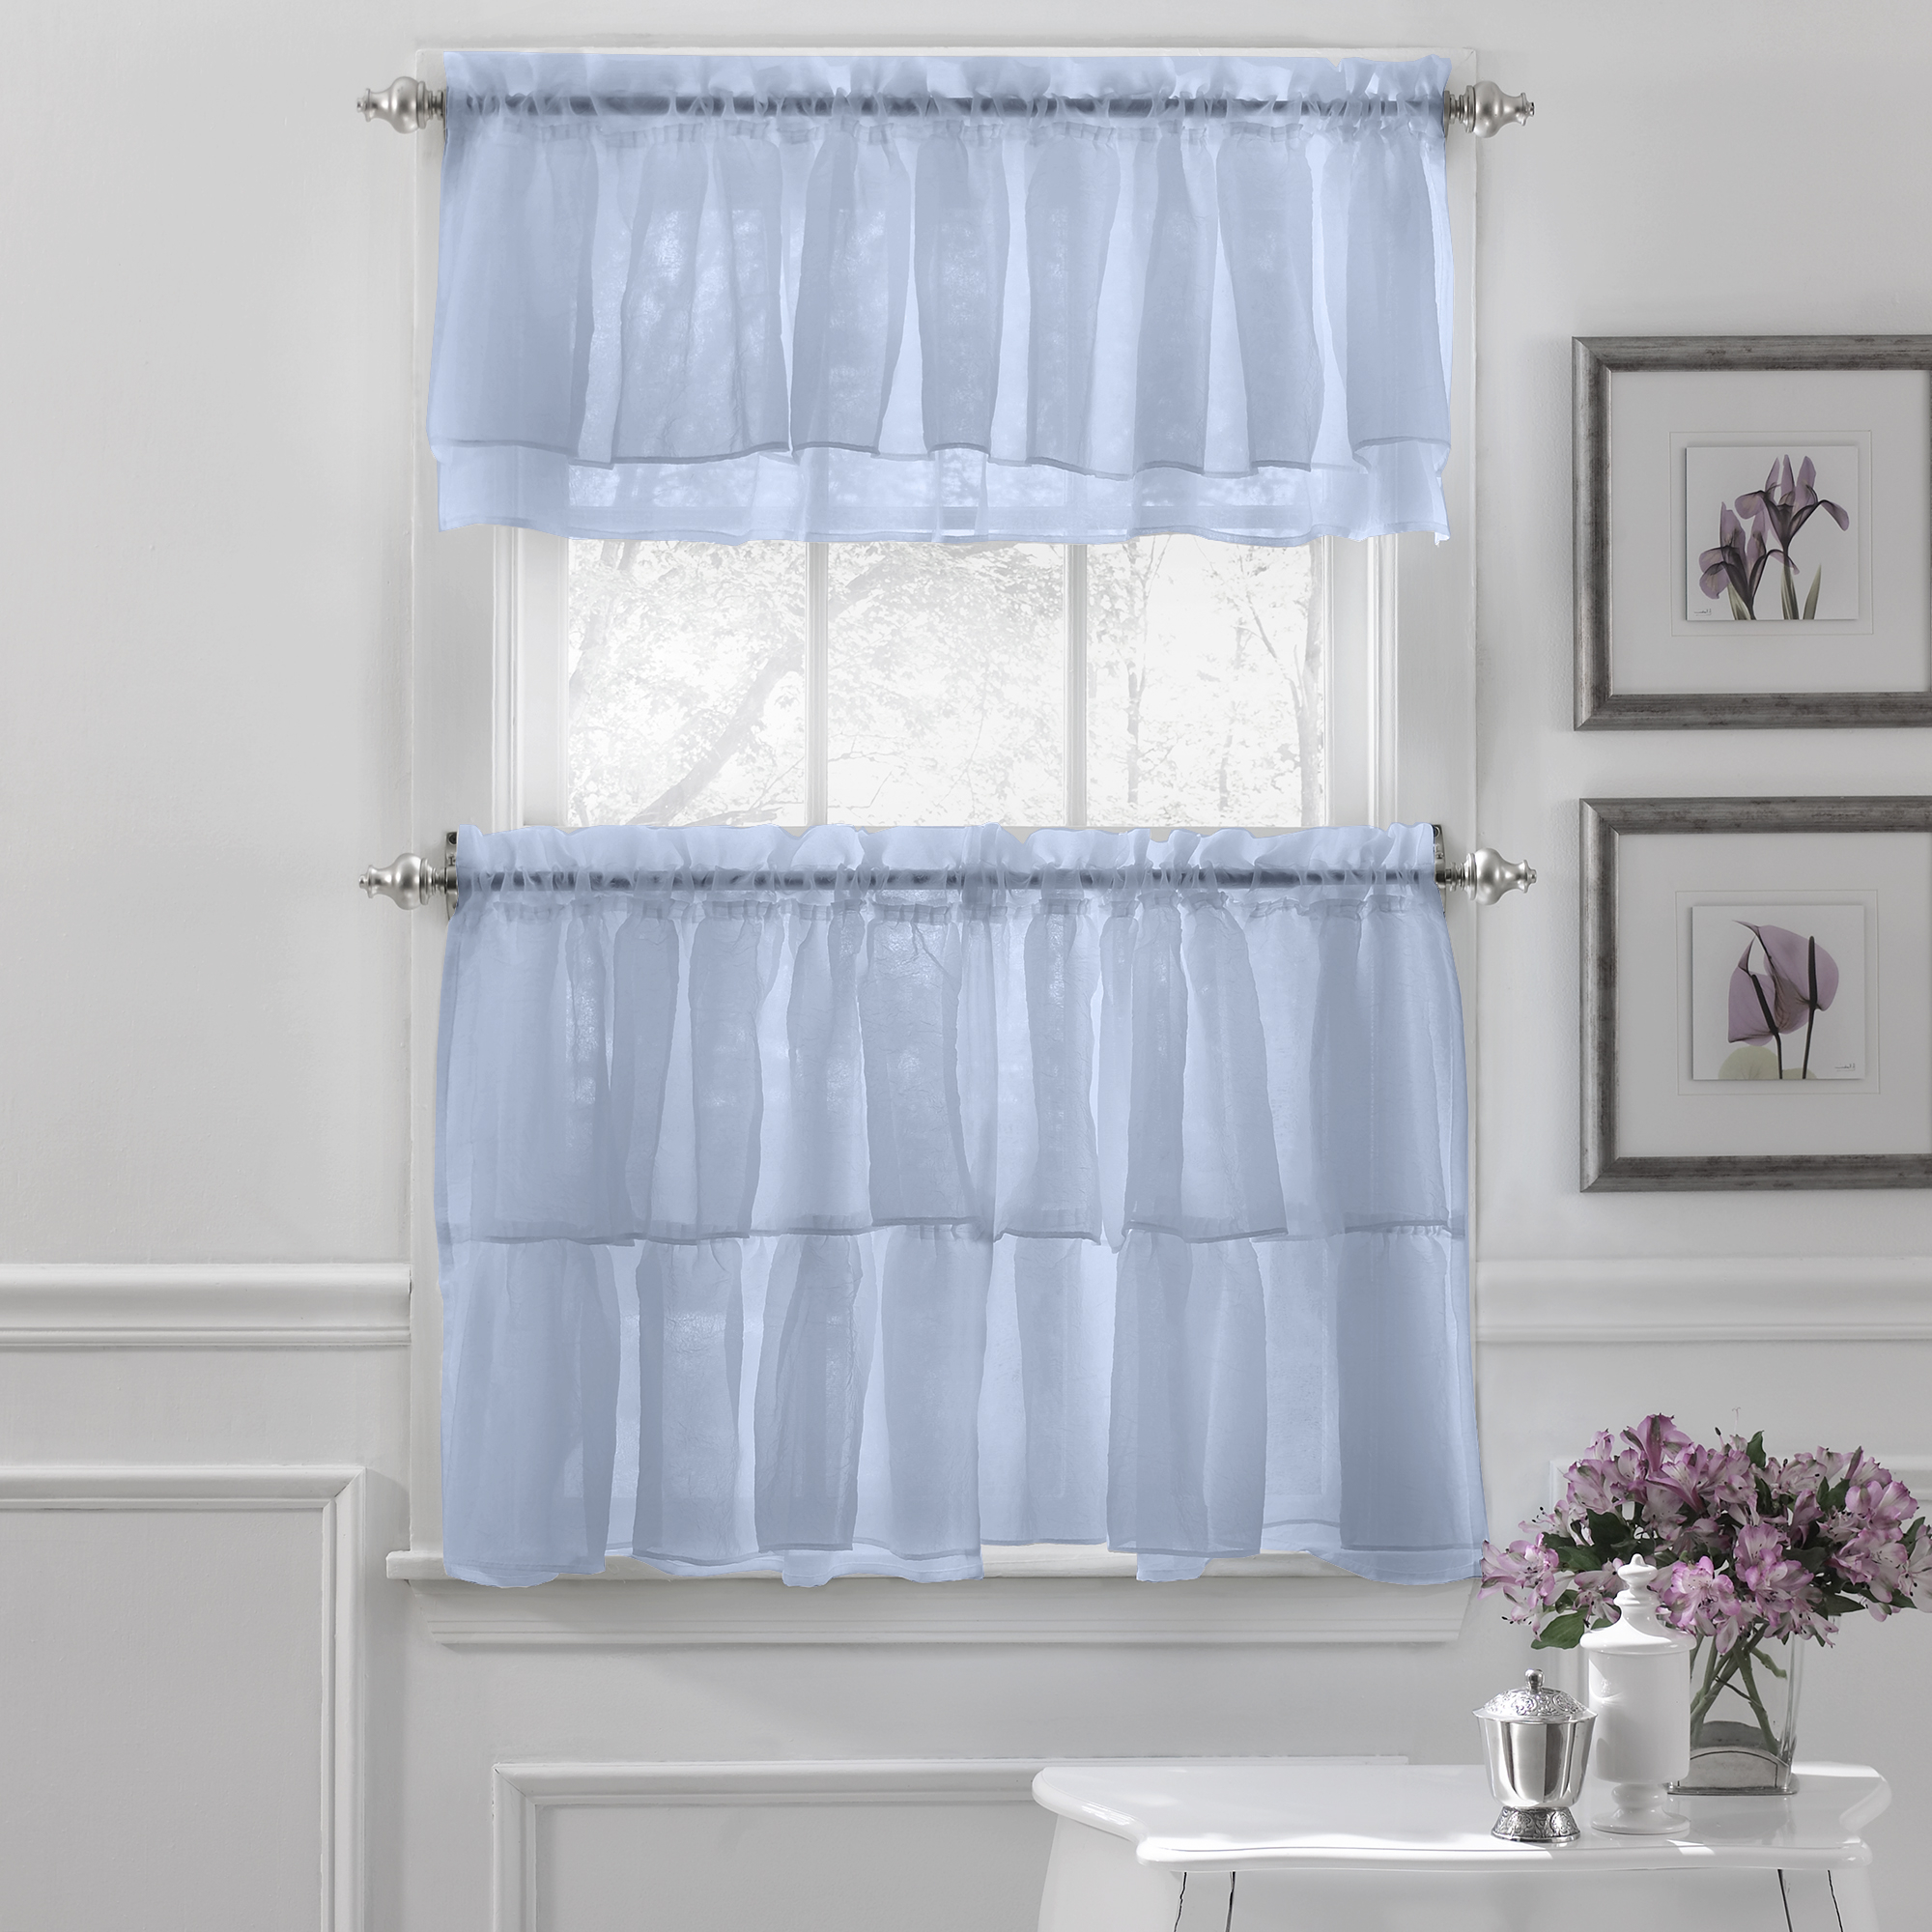 Bermuda Ruffle Kitchen Curtain Tier Sets With Current Details About Gypsy Crushed Voile Ruffle Kitchen Window Curtain Tiers Or  Valance Blue (View 6 of 20)